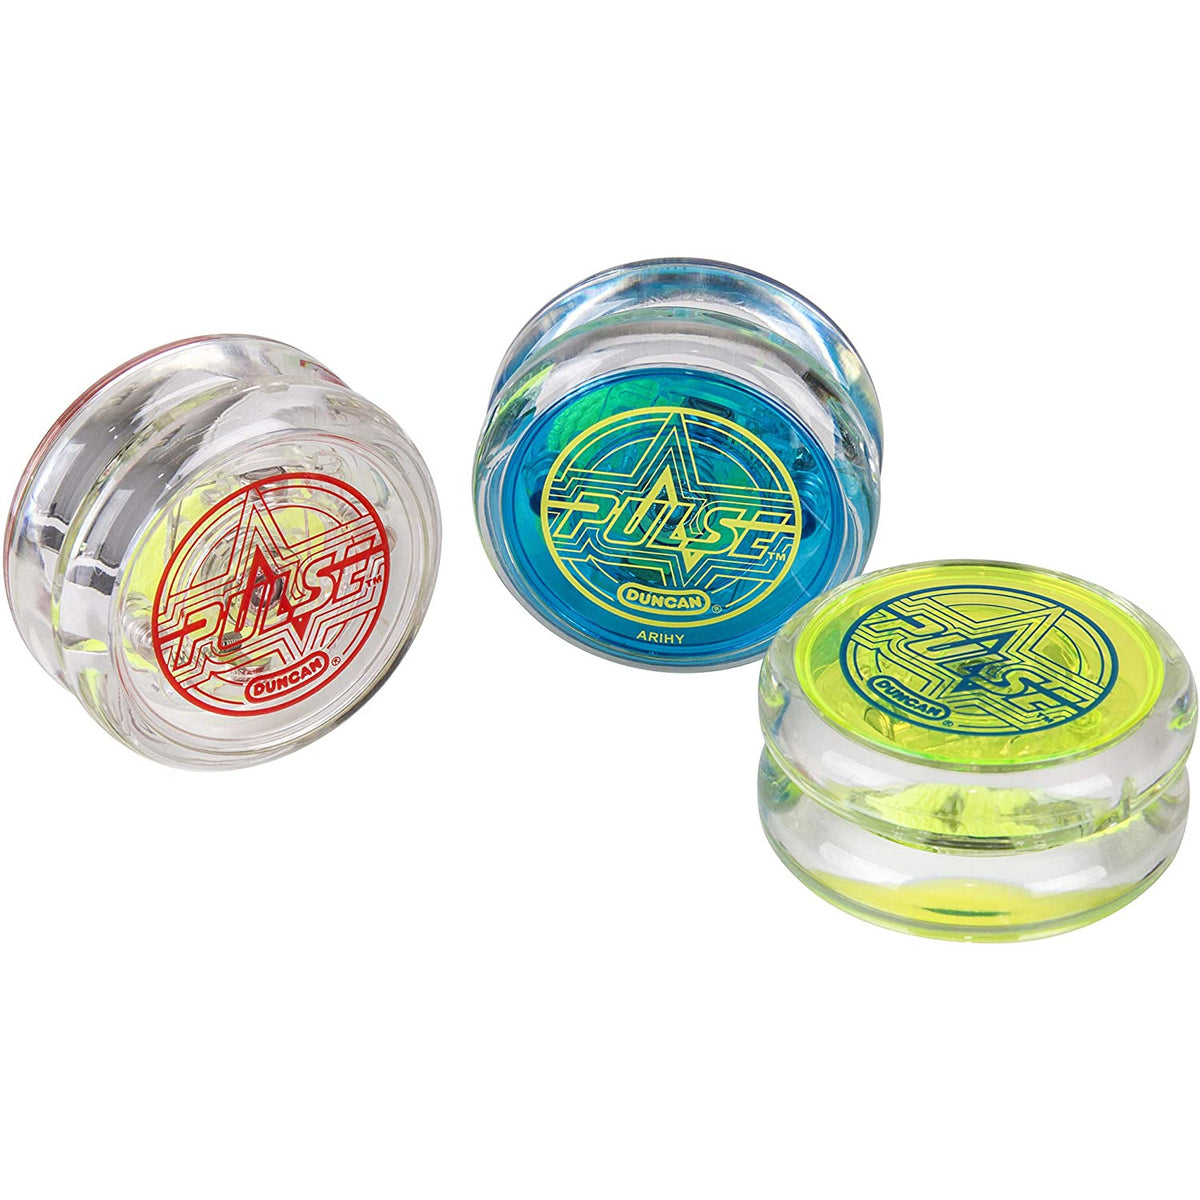 Duncan Pulse® Light Up Yo-Yo canada ontario